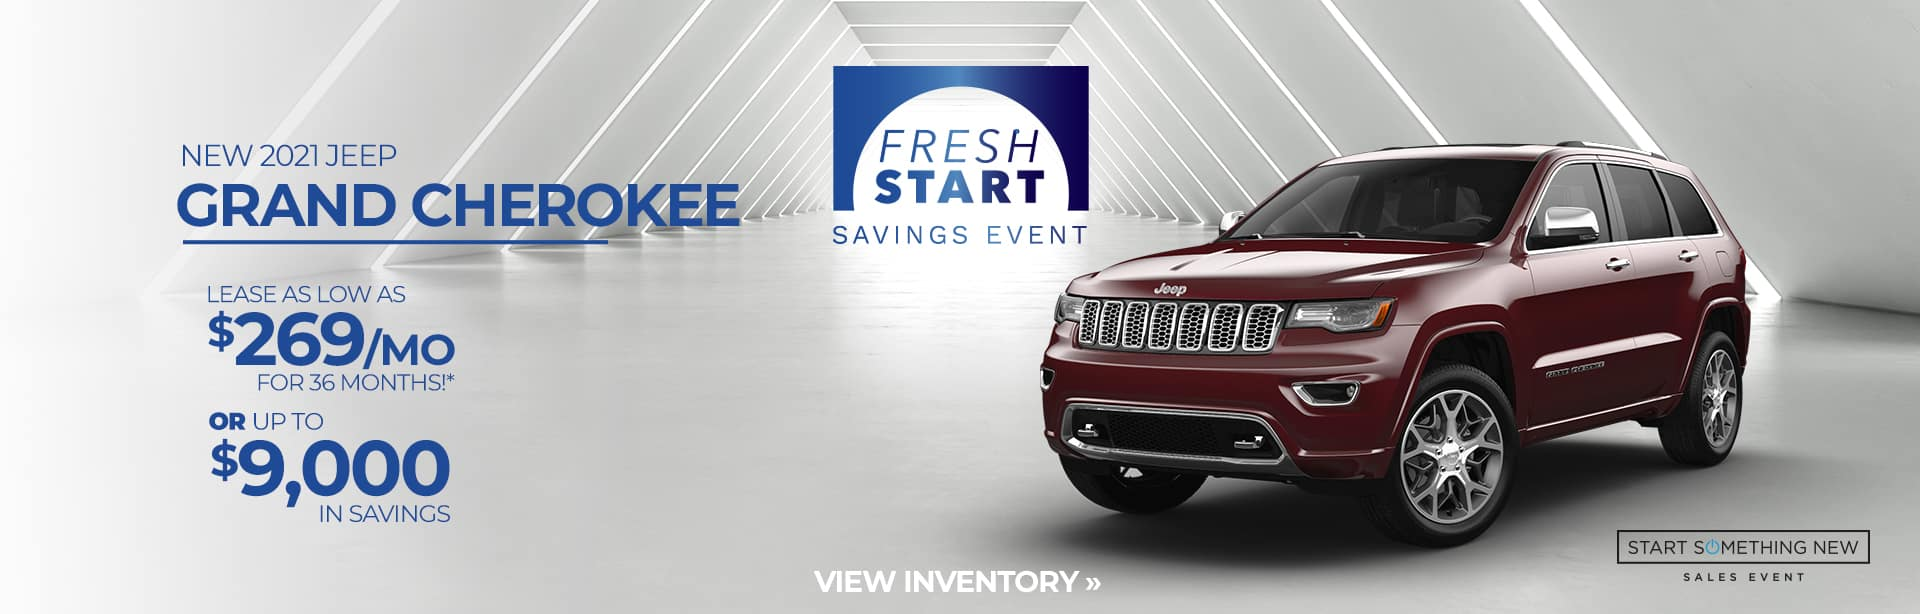 Great deal on a new 2021 Grand Cherokee Lease near Fort Wayne IN